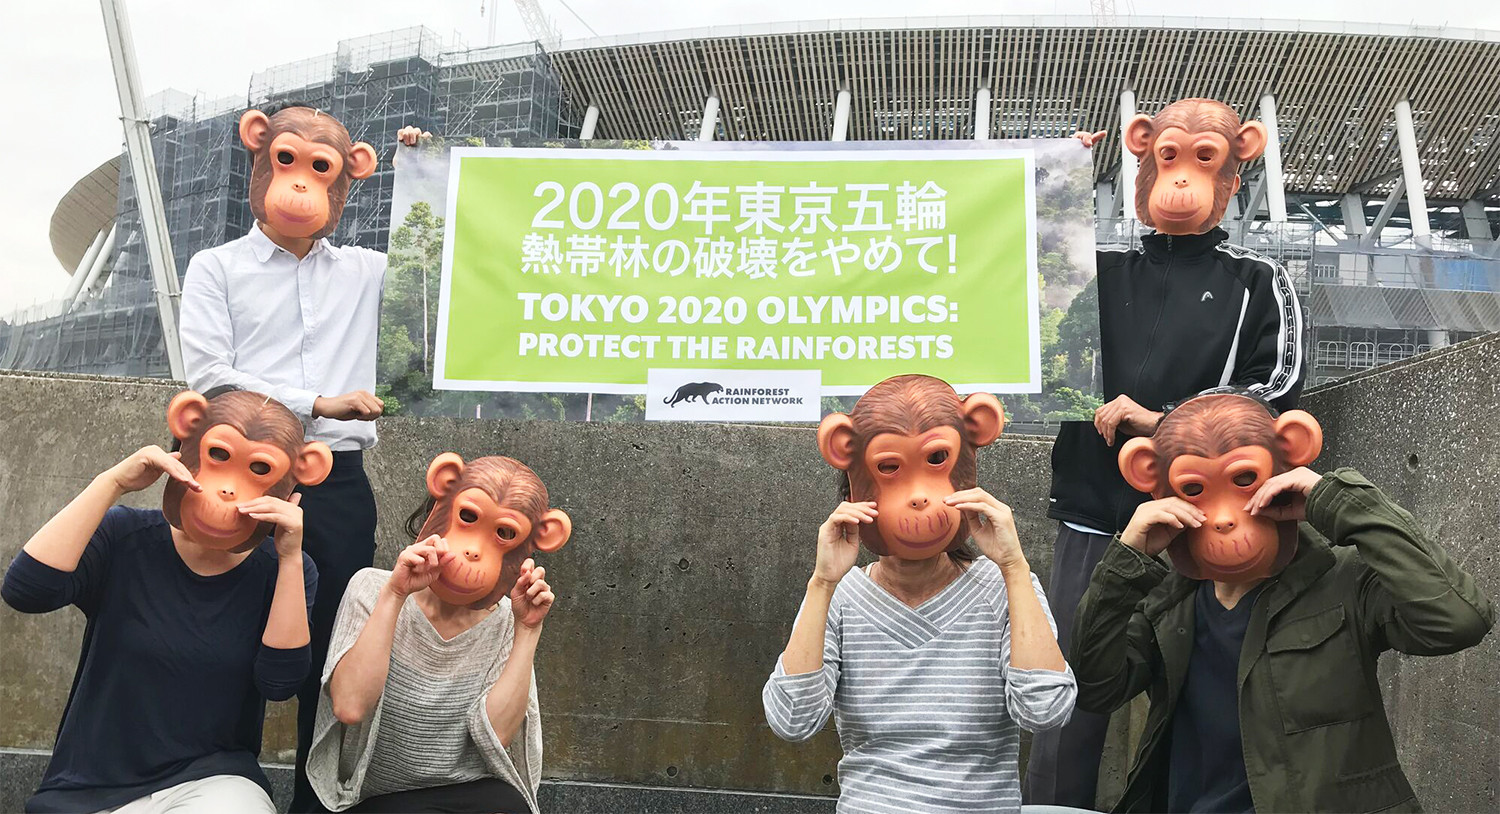 The Rainforest Action Network are among groups to have criticised Tokyo 2020 for allegedly using timber to help build facilities associated with rainforest destruction and human rights abuses ©Rainforest Action Network